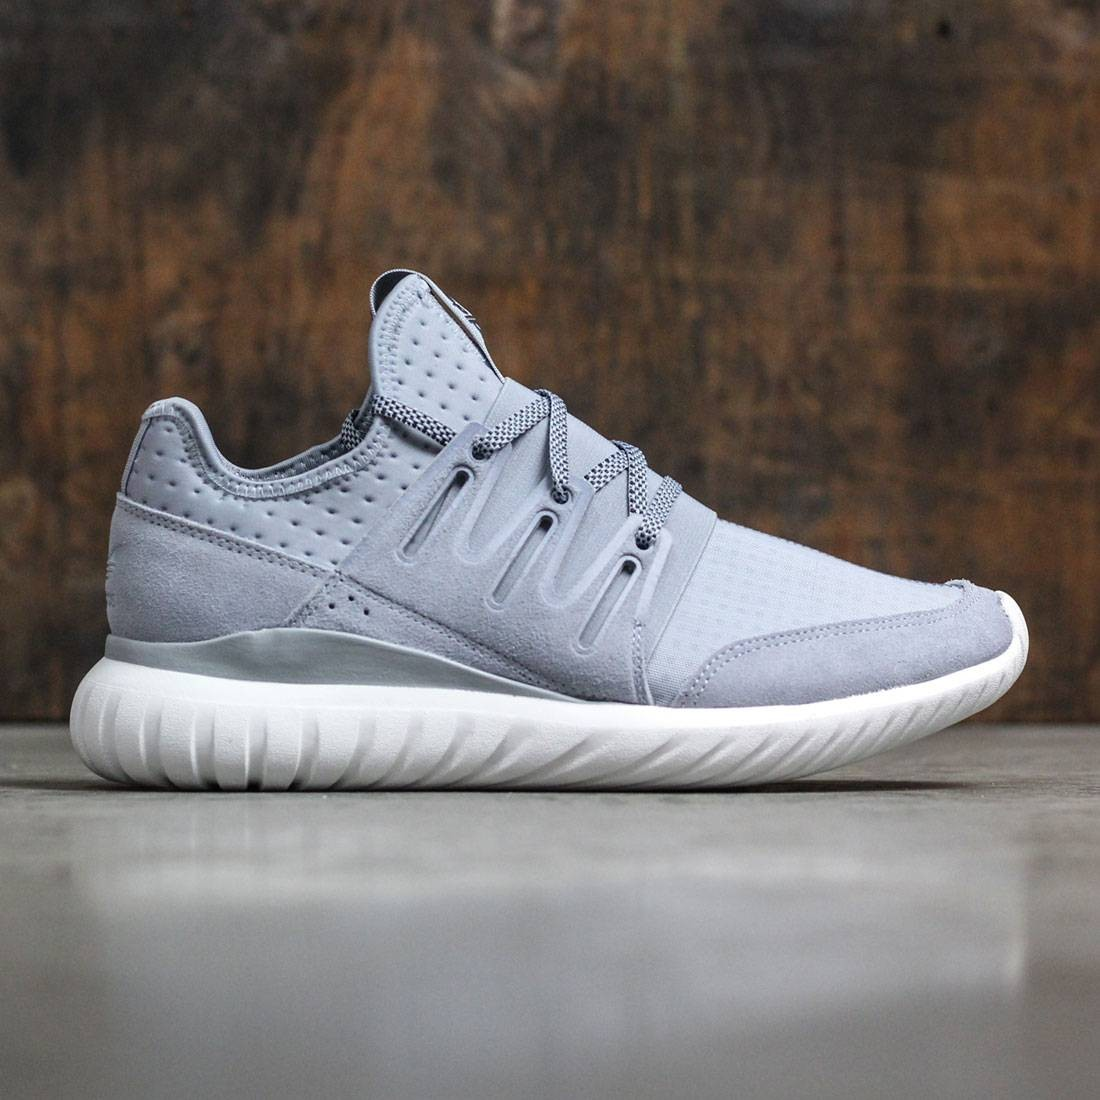 c0e6e72c1d65 Adidas Men Tubular Radial gray light grey core black vintage white